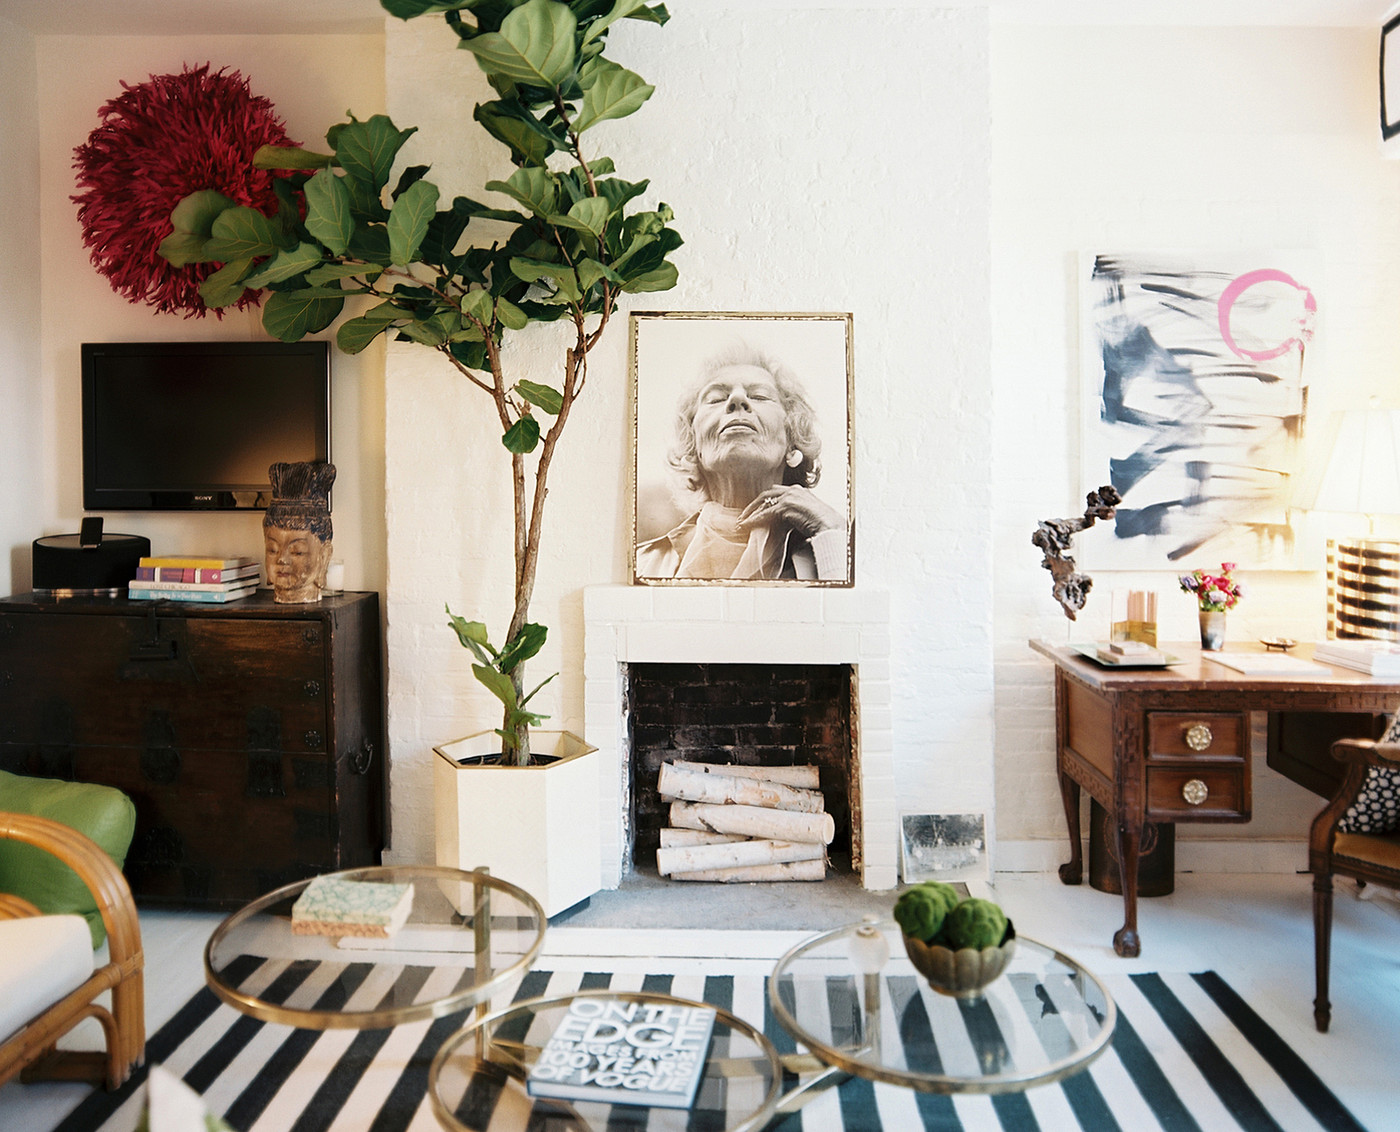 Fiddle Leaf Figs | Lonny.com